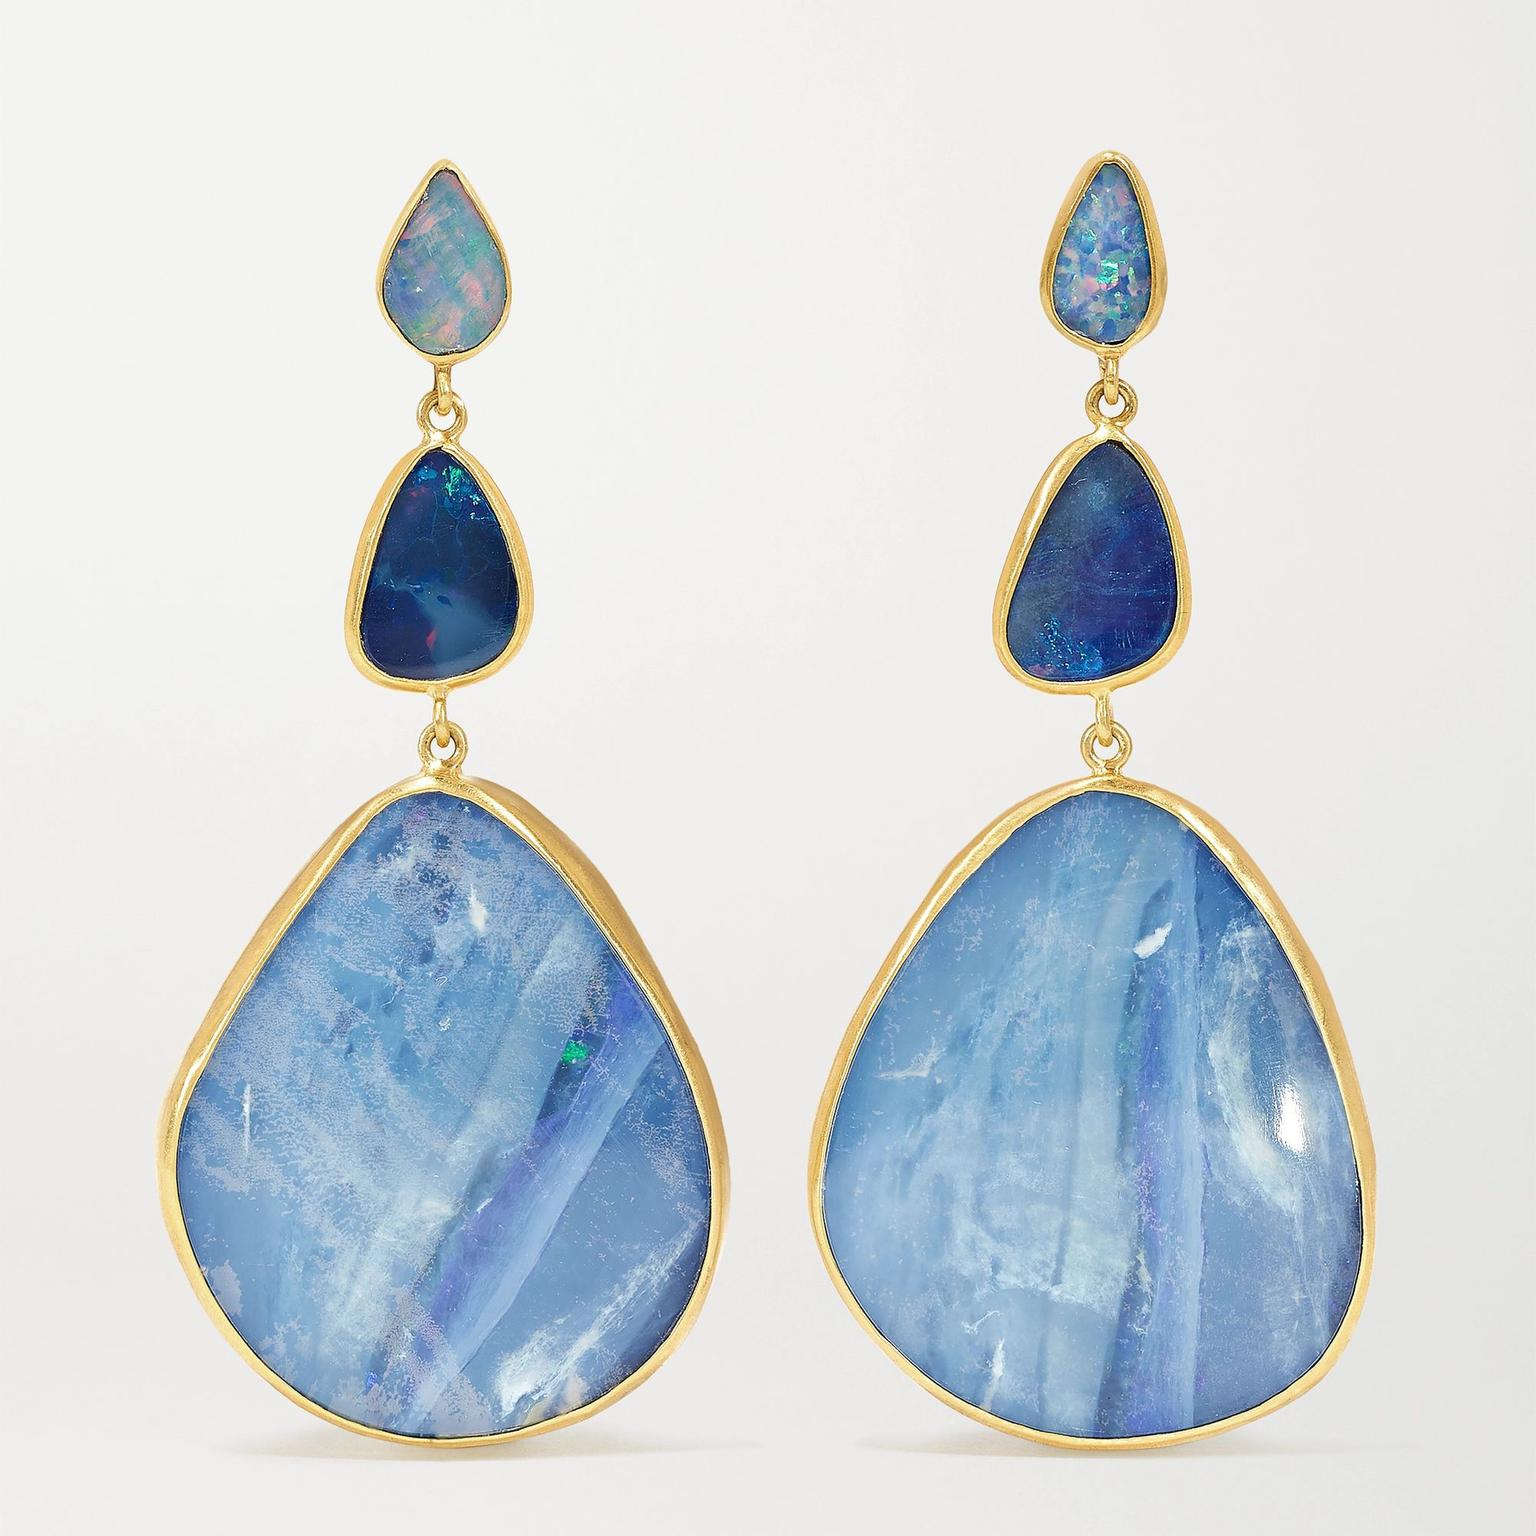 Opal earrings by Pippa Small